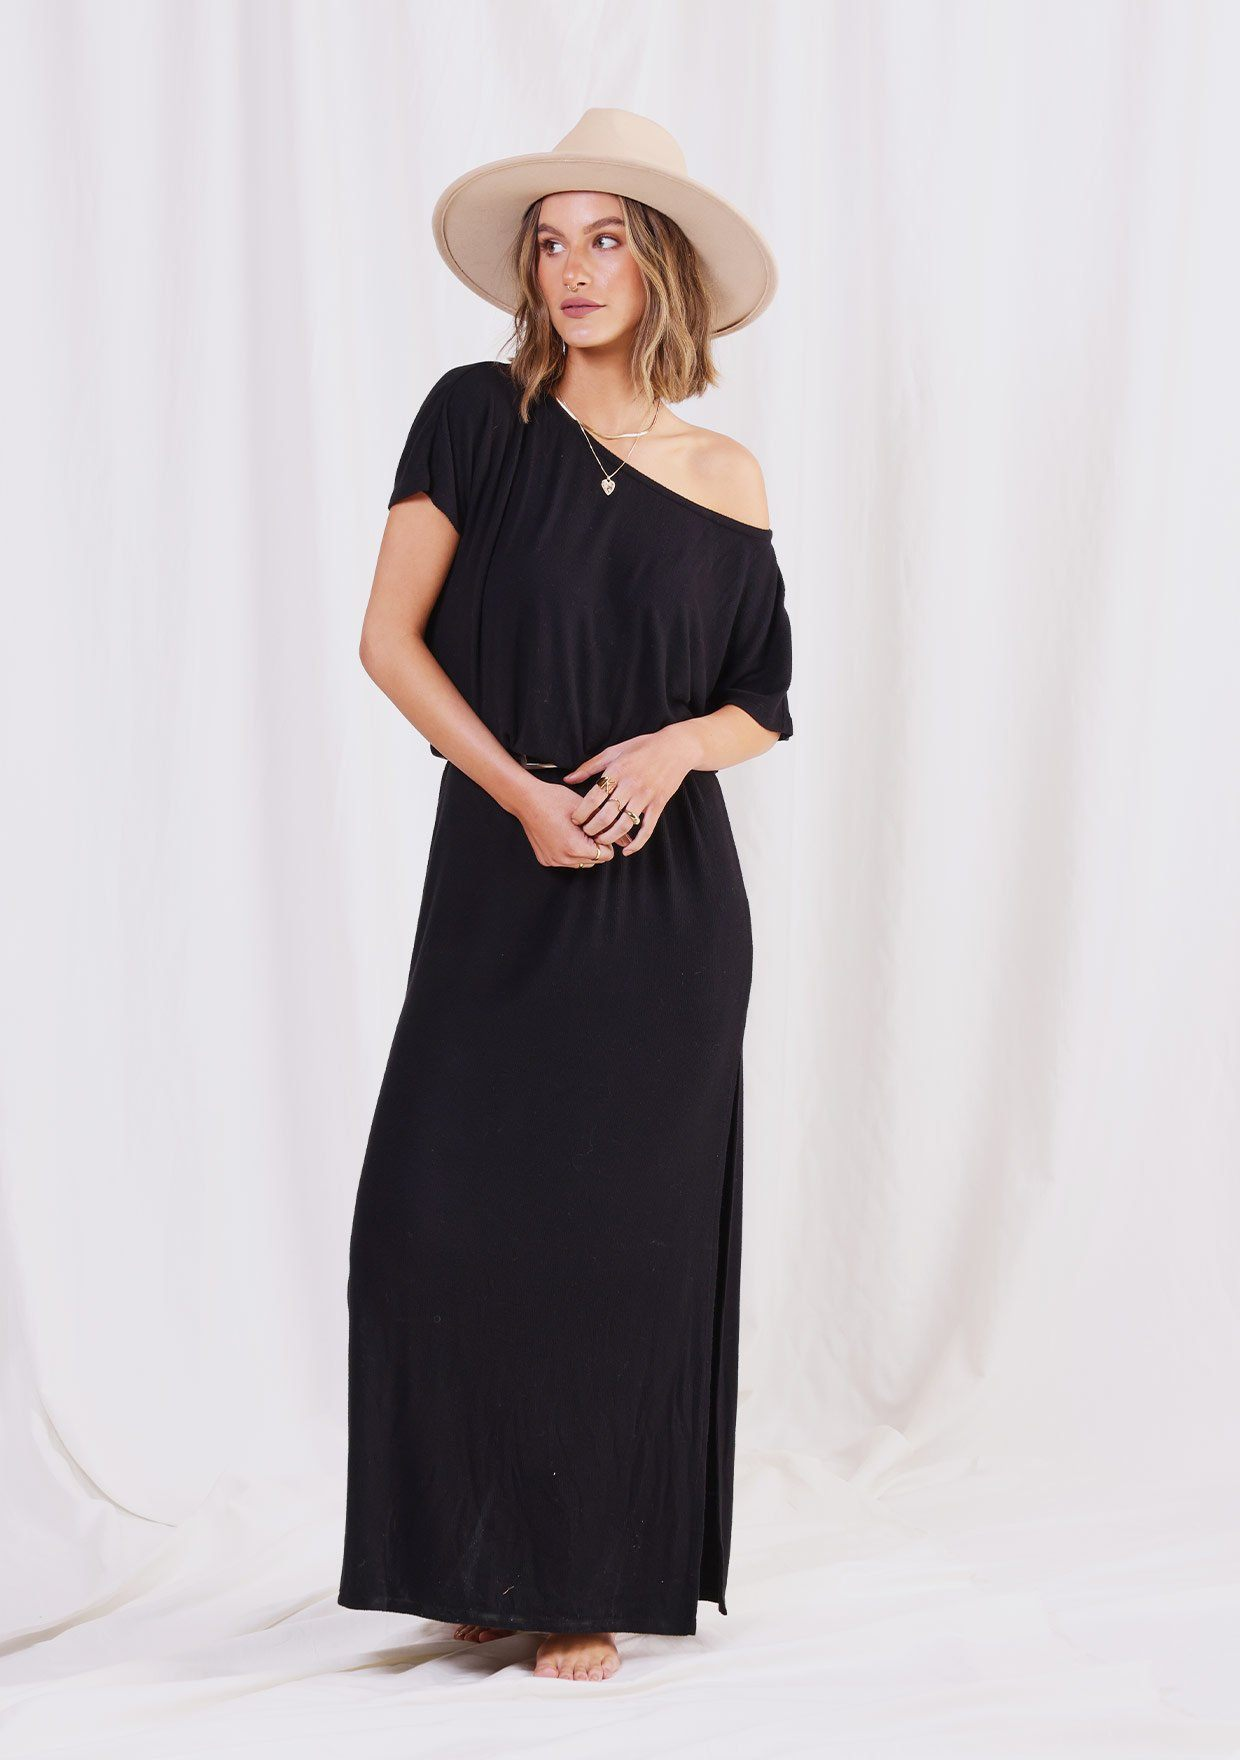 [Color: Black] A woman standing against a white back drop wearing a soft micro ribbed maxi dress with an elastic waist, short sleeves, and a wide neckline that can be worn off the shoulder.